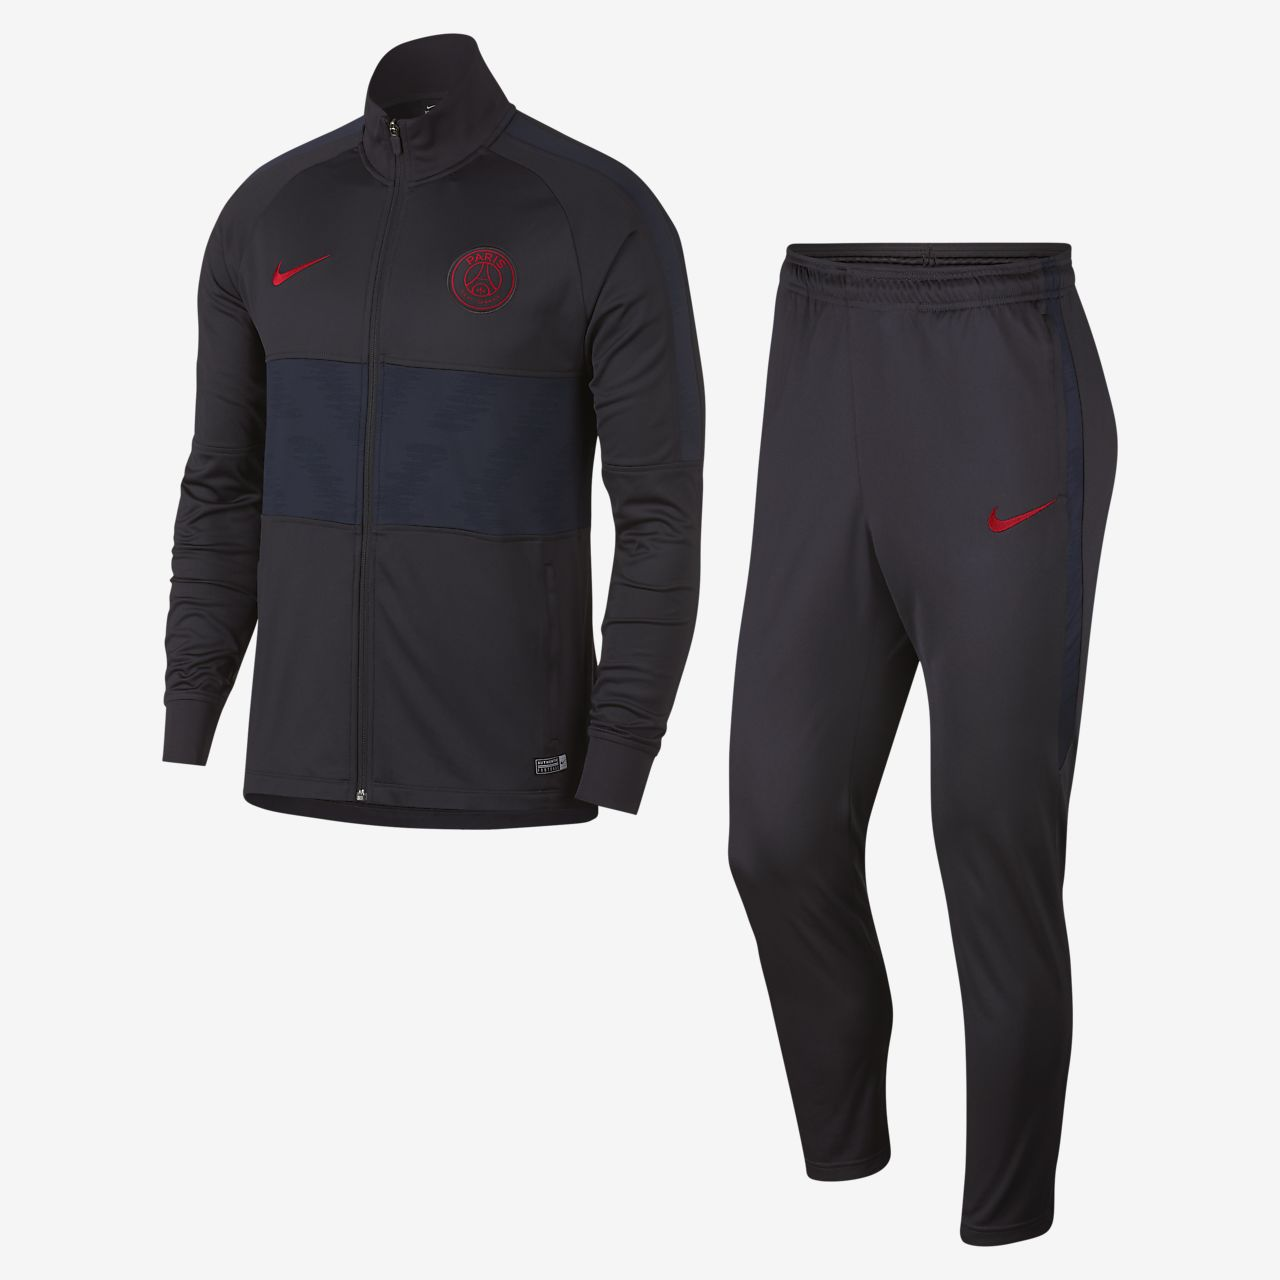 Tuta da calcio Nike Dri-FIT Paris Saint-Germain Strike - Uomo